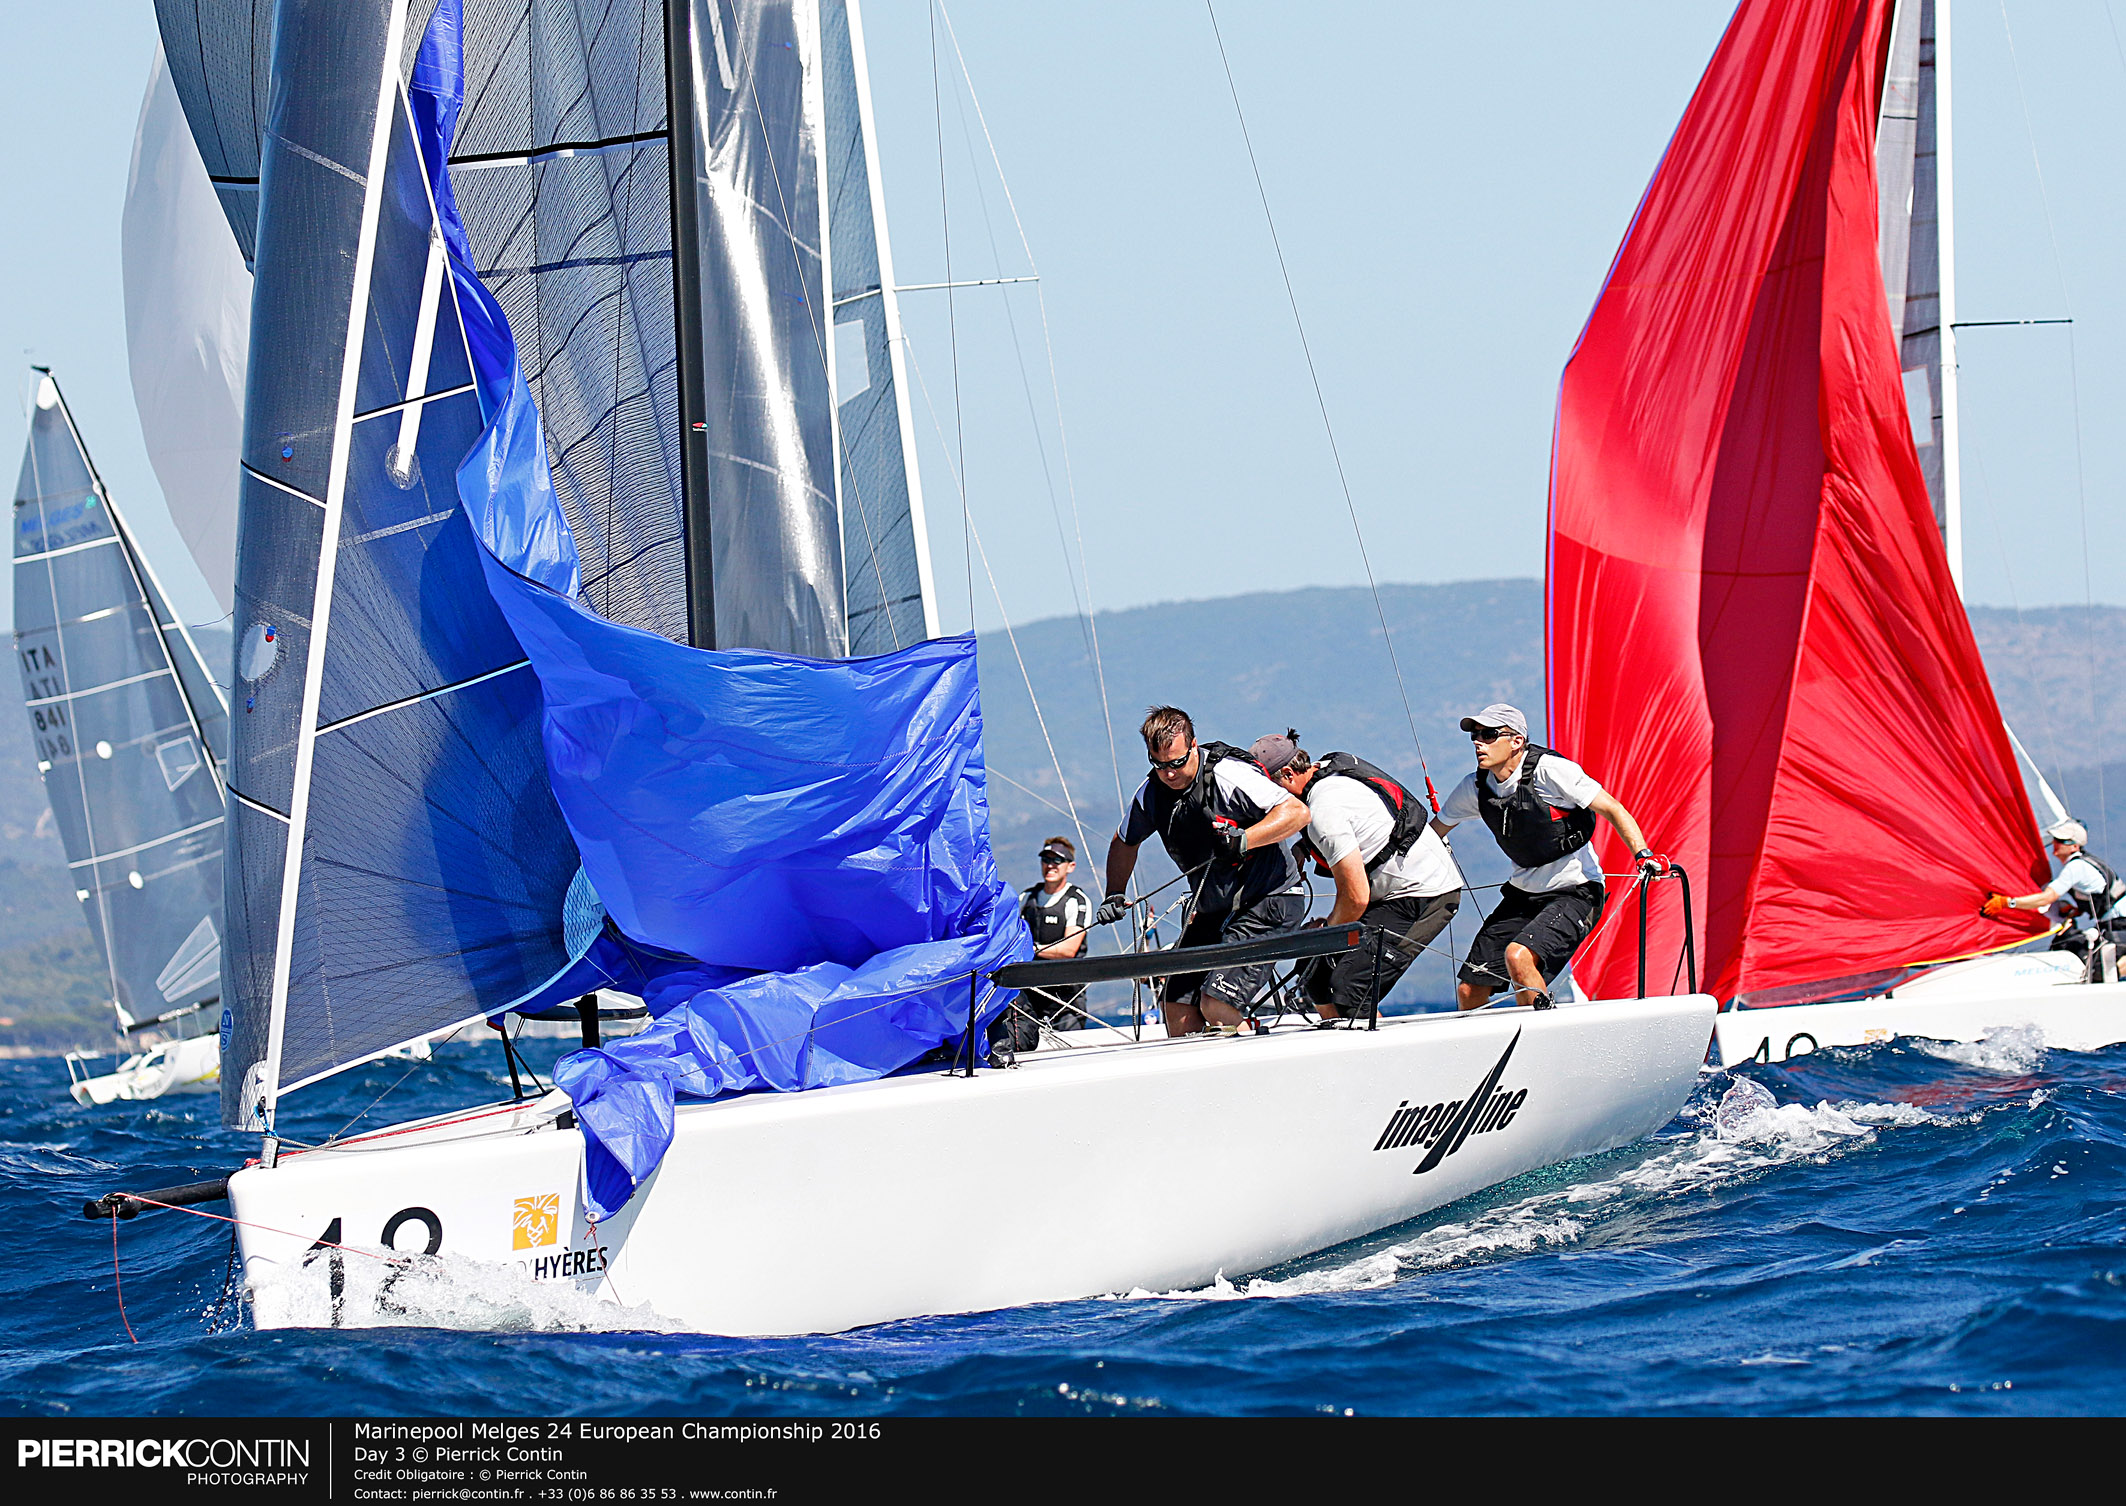 David Rowen's IMAGINE GBR557